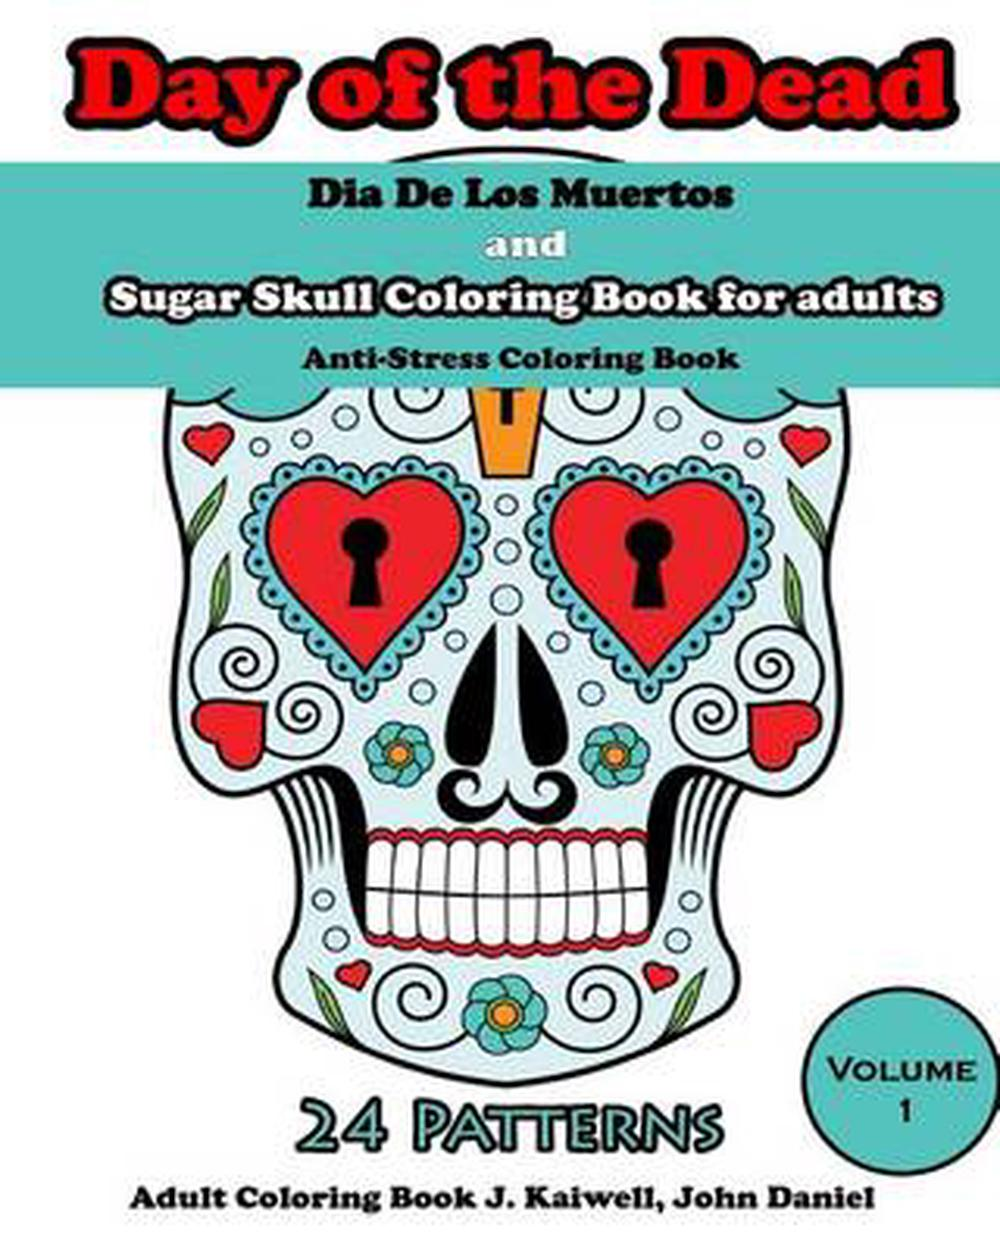 Details about Dia de Los Muertos: Day of the Dead and Sugar Skull Coloring  Book for Adults: Co